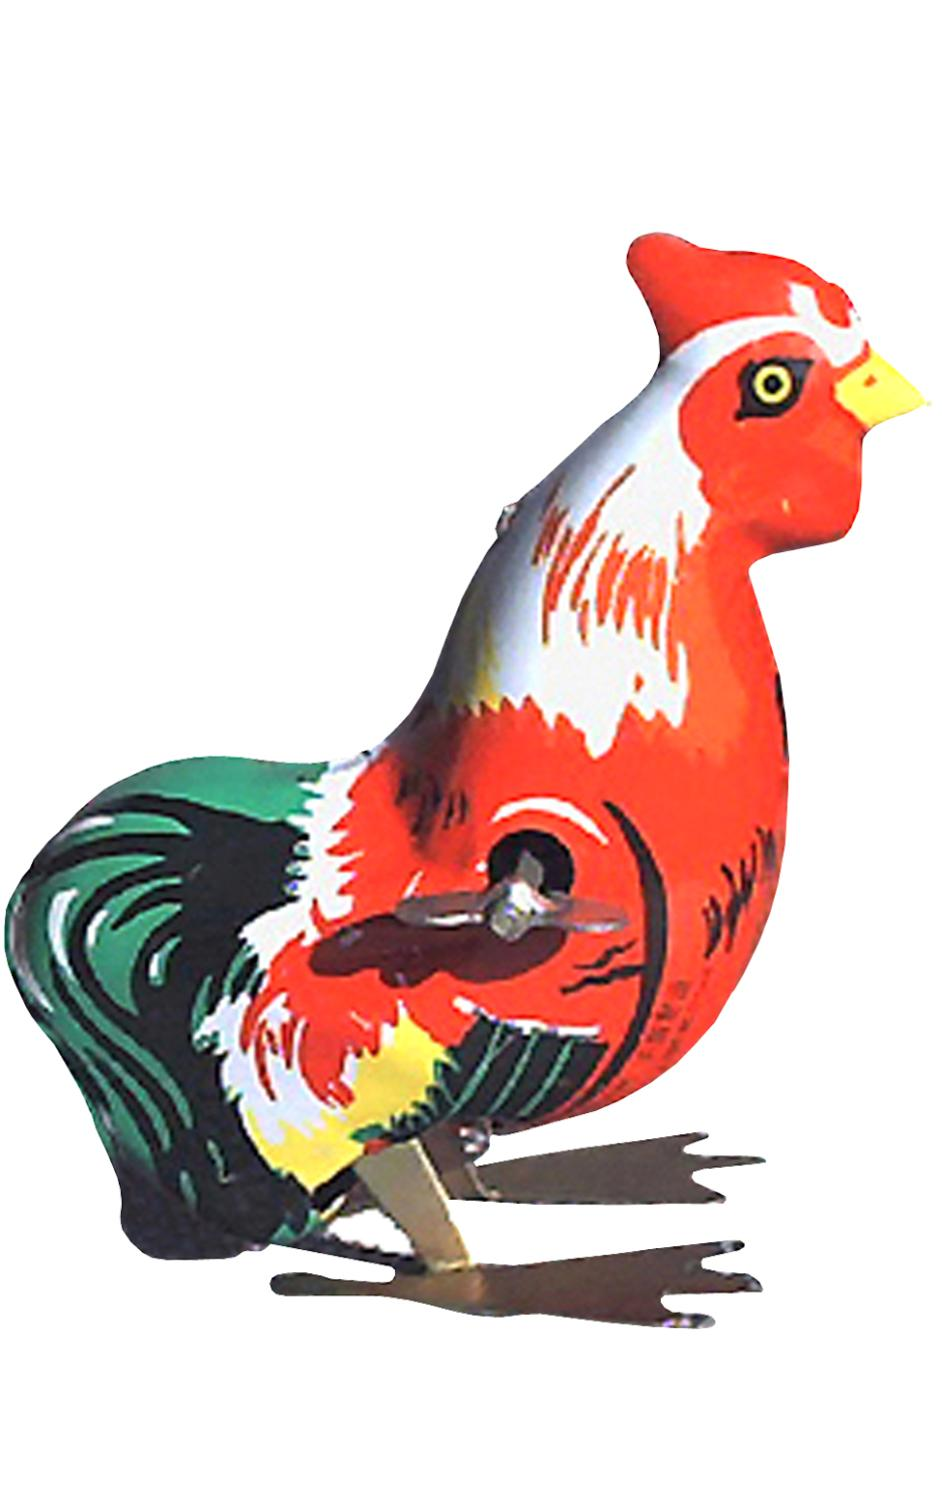 MS205 - Collectible Tin Toy - Hopping Rooster - 3